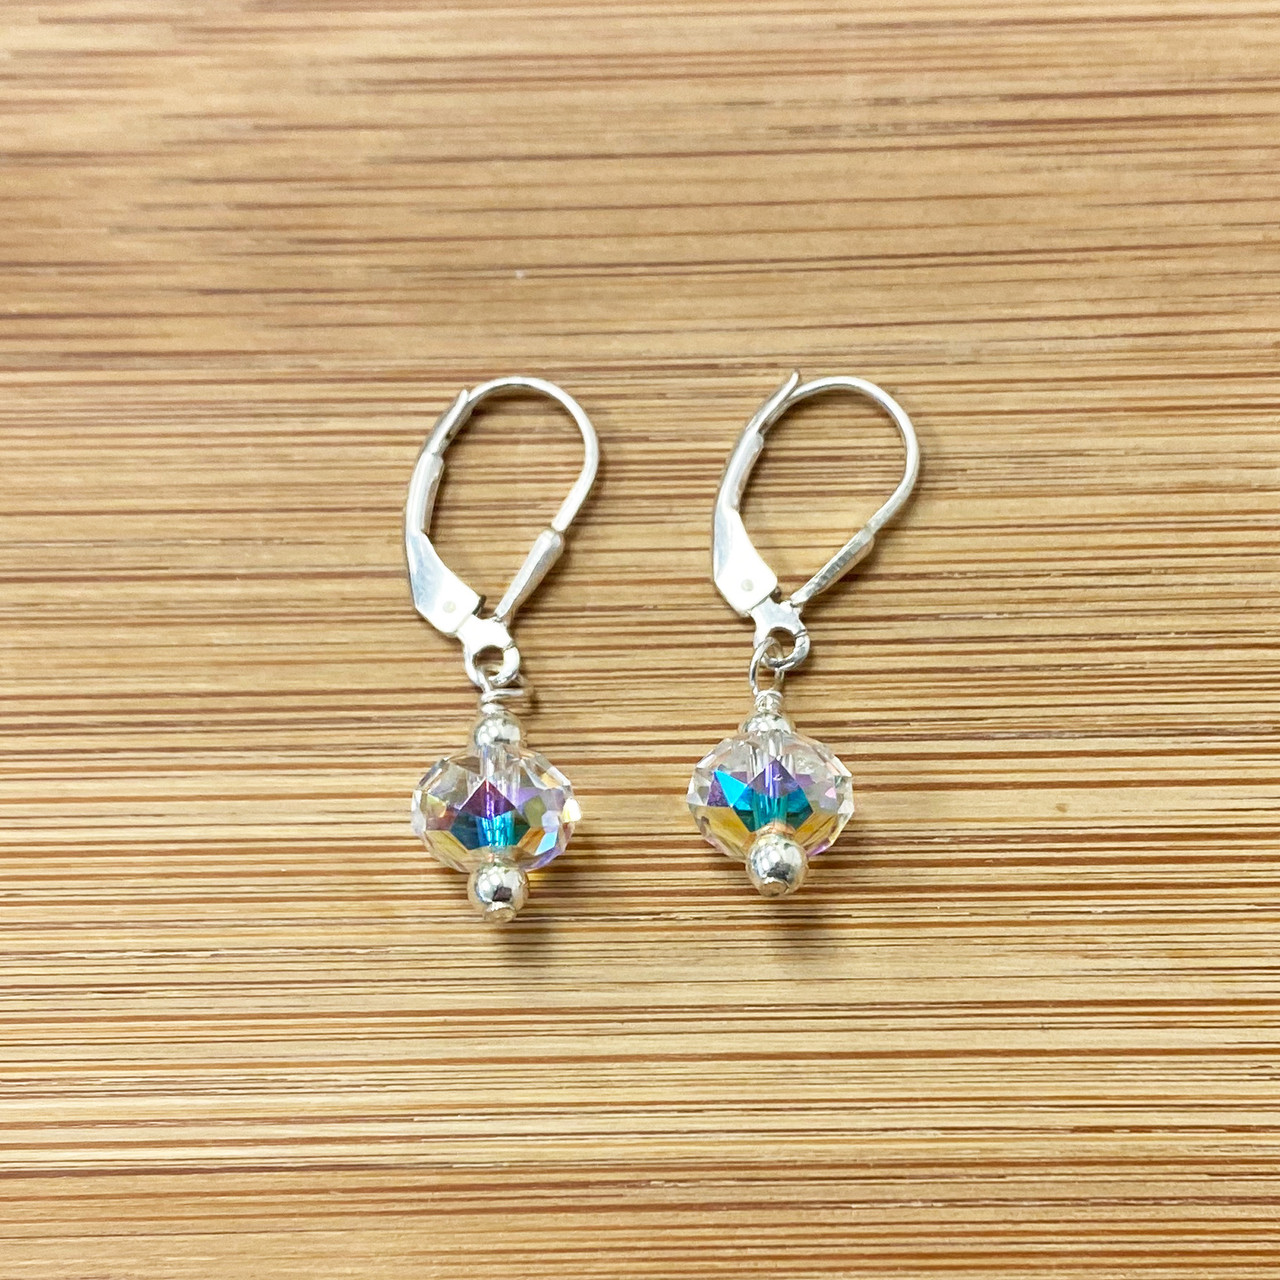 Swarovski Elements Clear Crystal Leverback Drop Earrings with 925 Sterling Silver